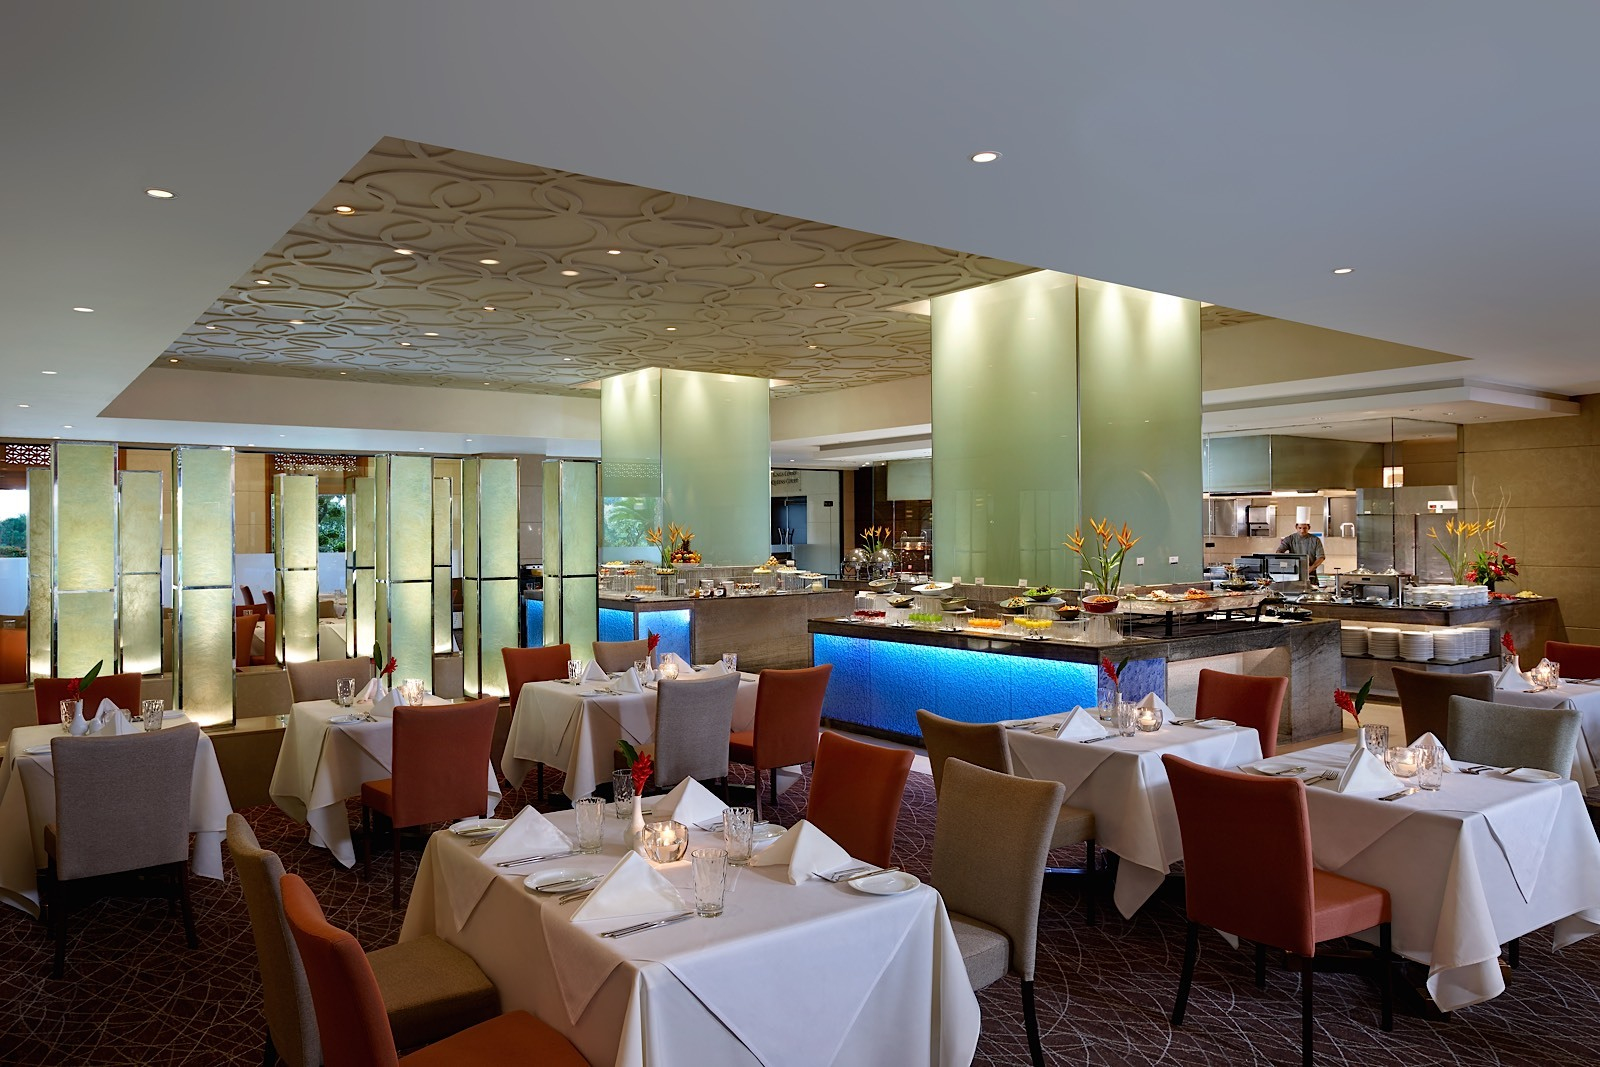 Sunday brunch at The Dining Room